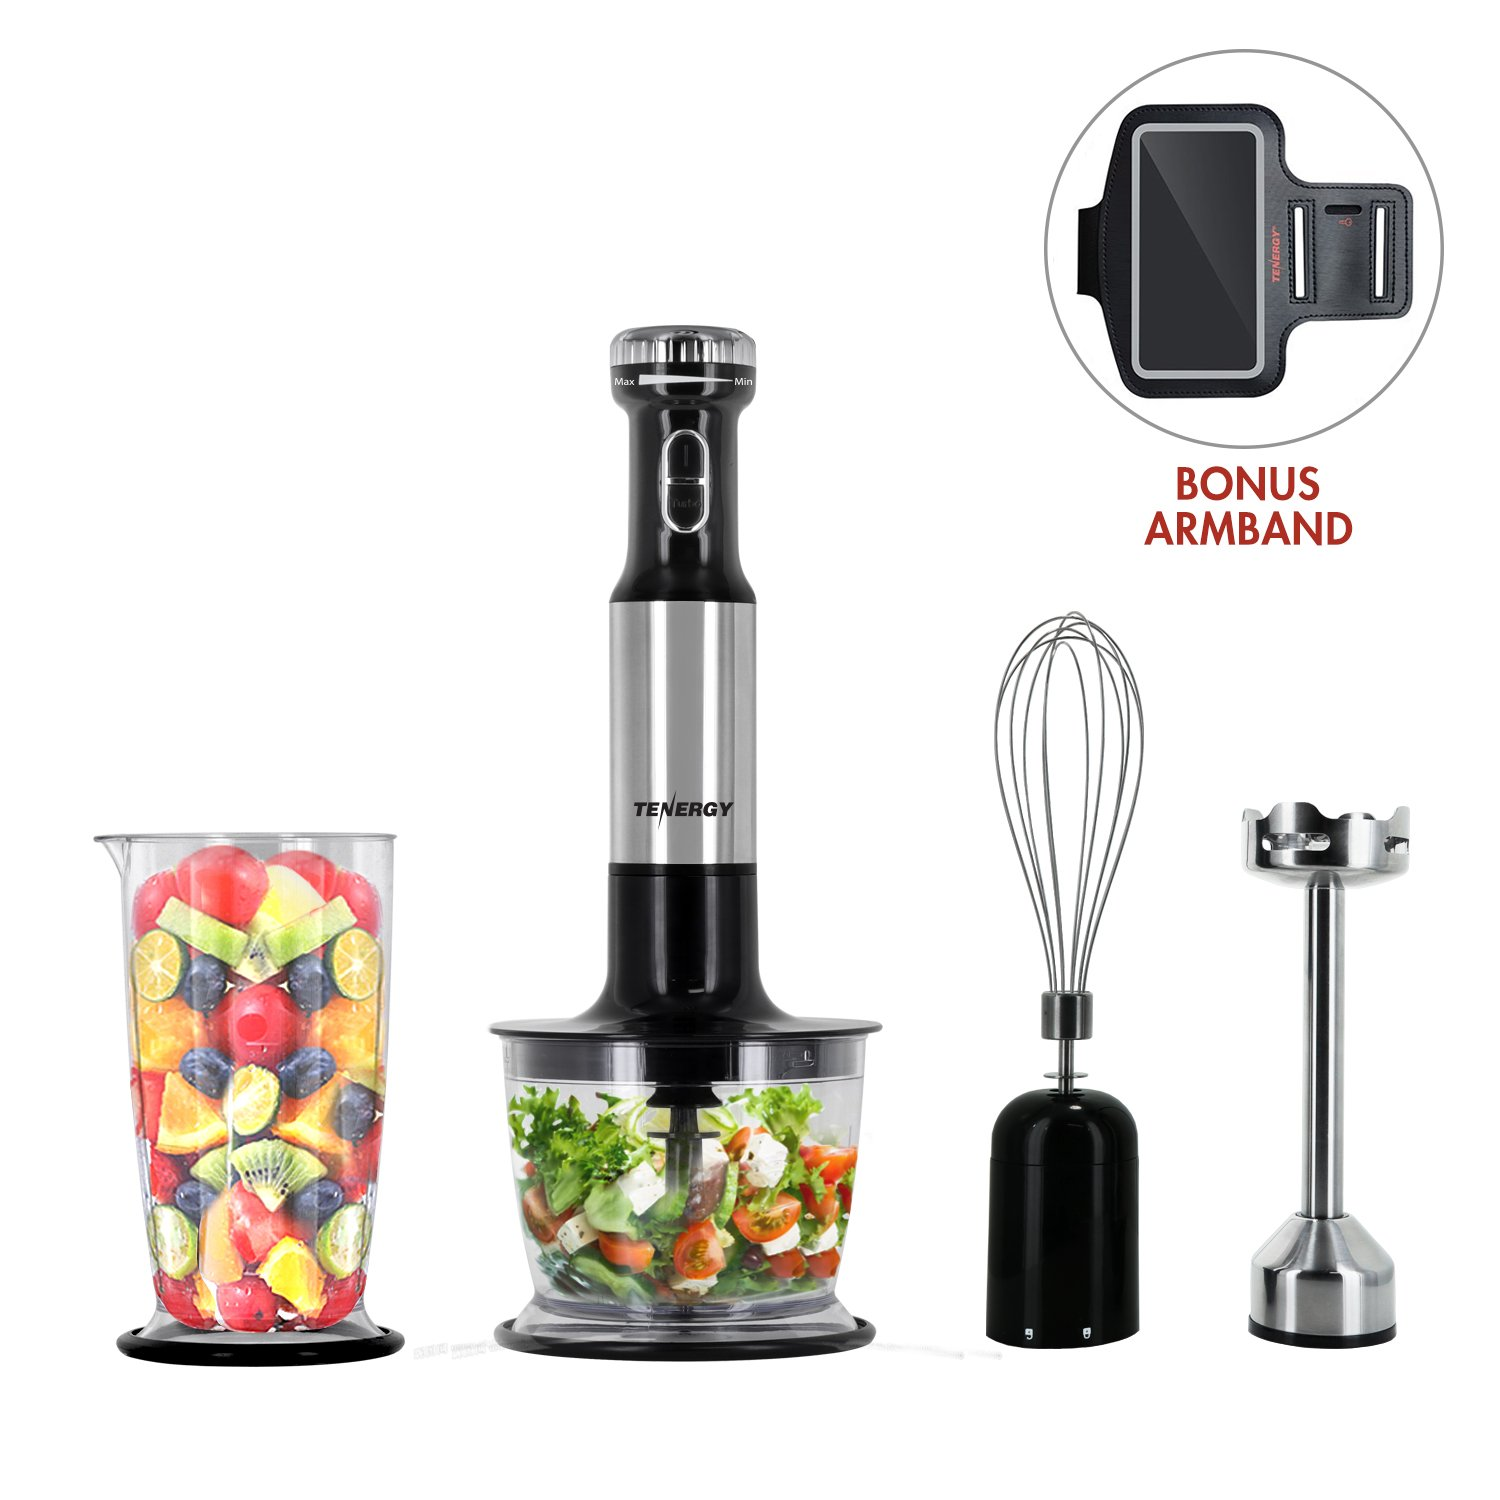 Tenergy Immersion Blender, 200W Multi-Speed Food Mixer Set with Stainless Steel Hand Blender, Chopper, Whisk, Beaker Attachment for Soup, Sauce, Baby Food, Purée and Emulsify, Bonus Cell Phone Armband